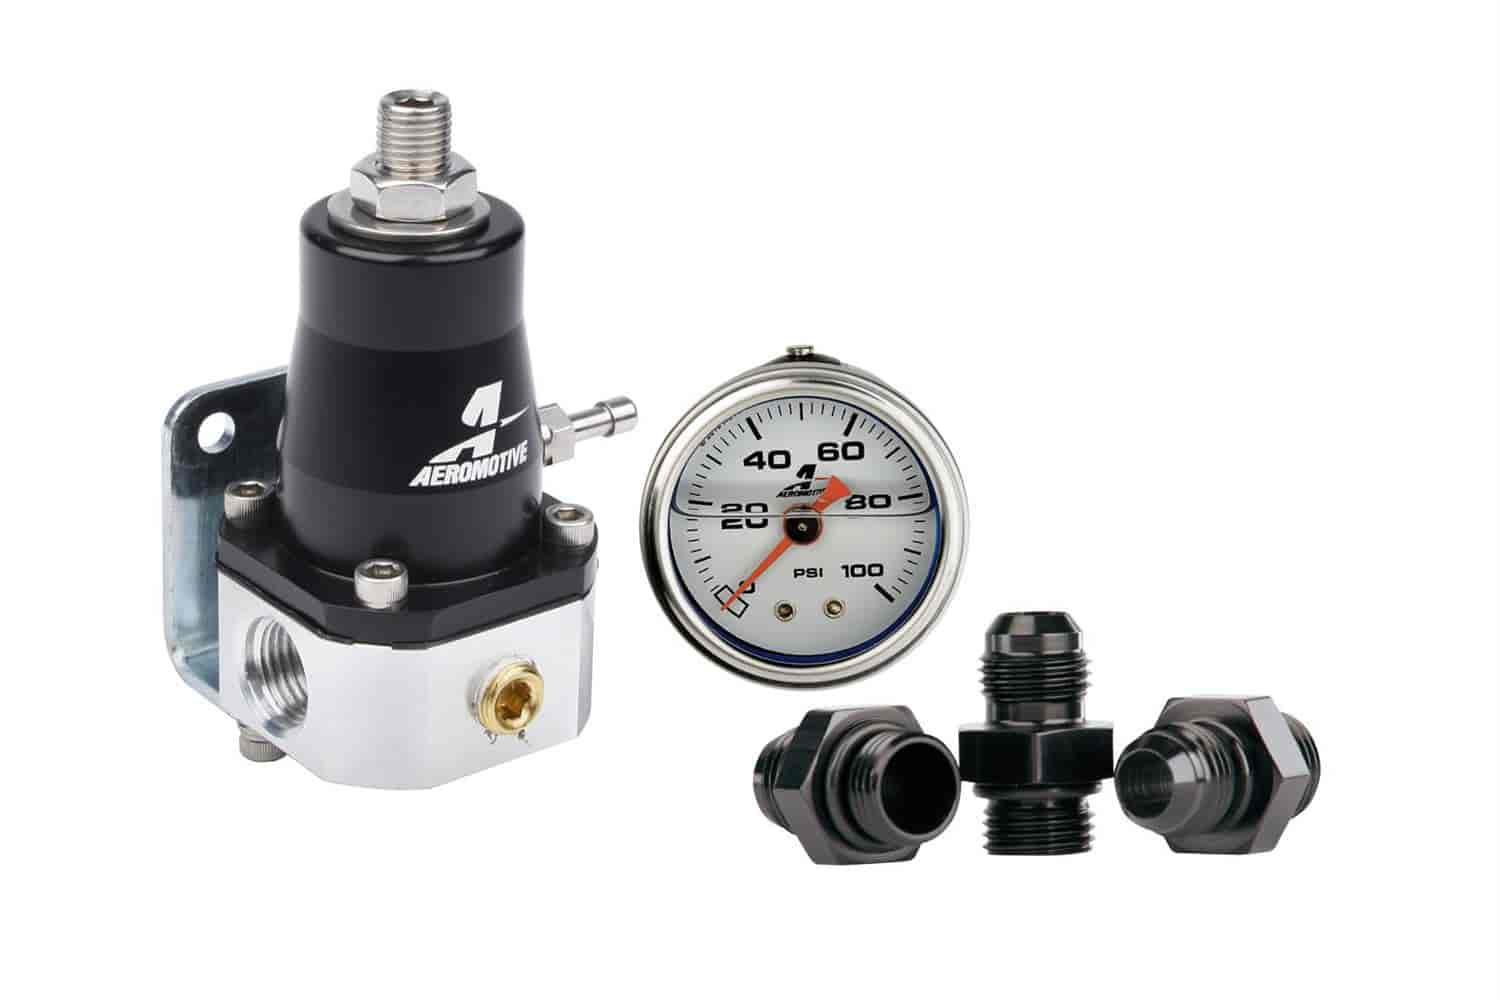 Aeromotive 13130 - Aeromotive Compact EFI Fuel Pressure Regulator